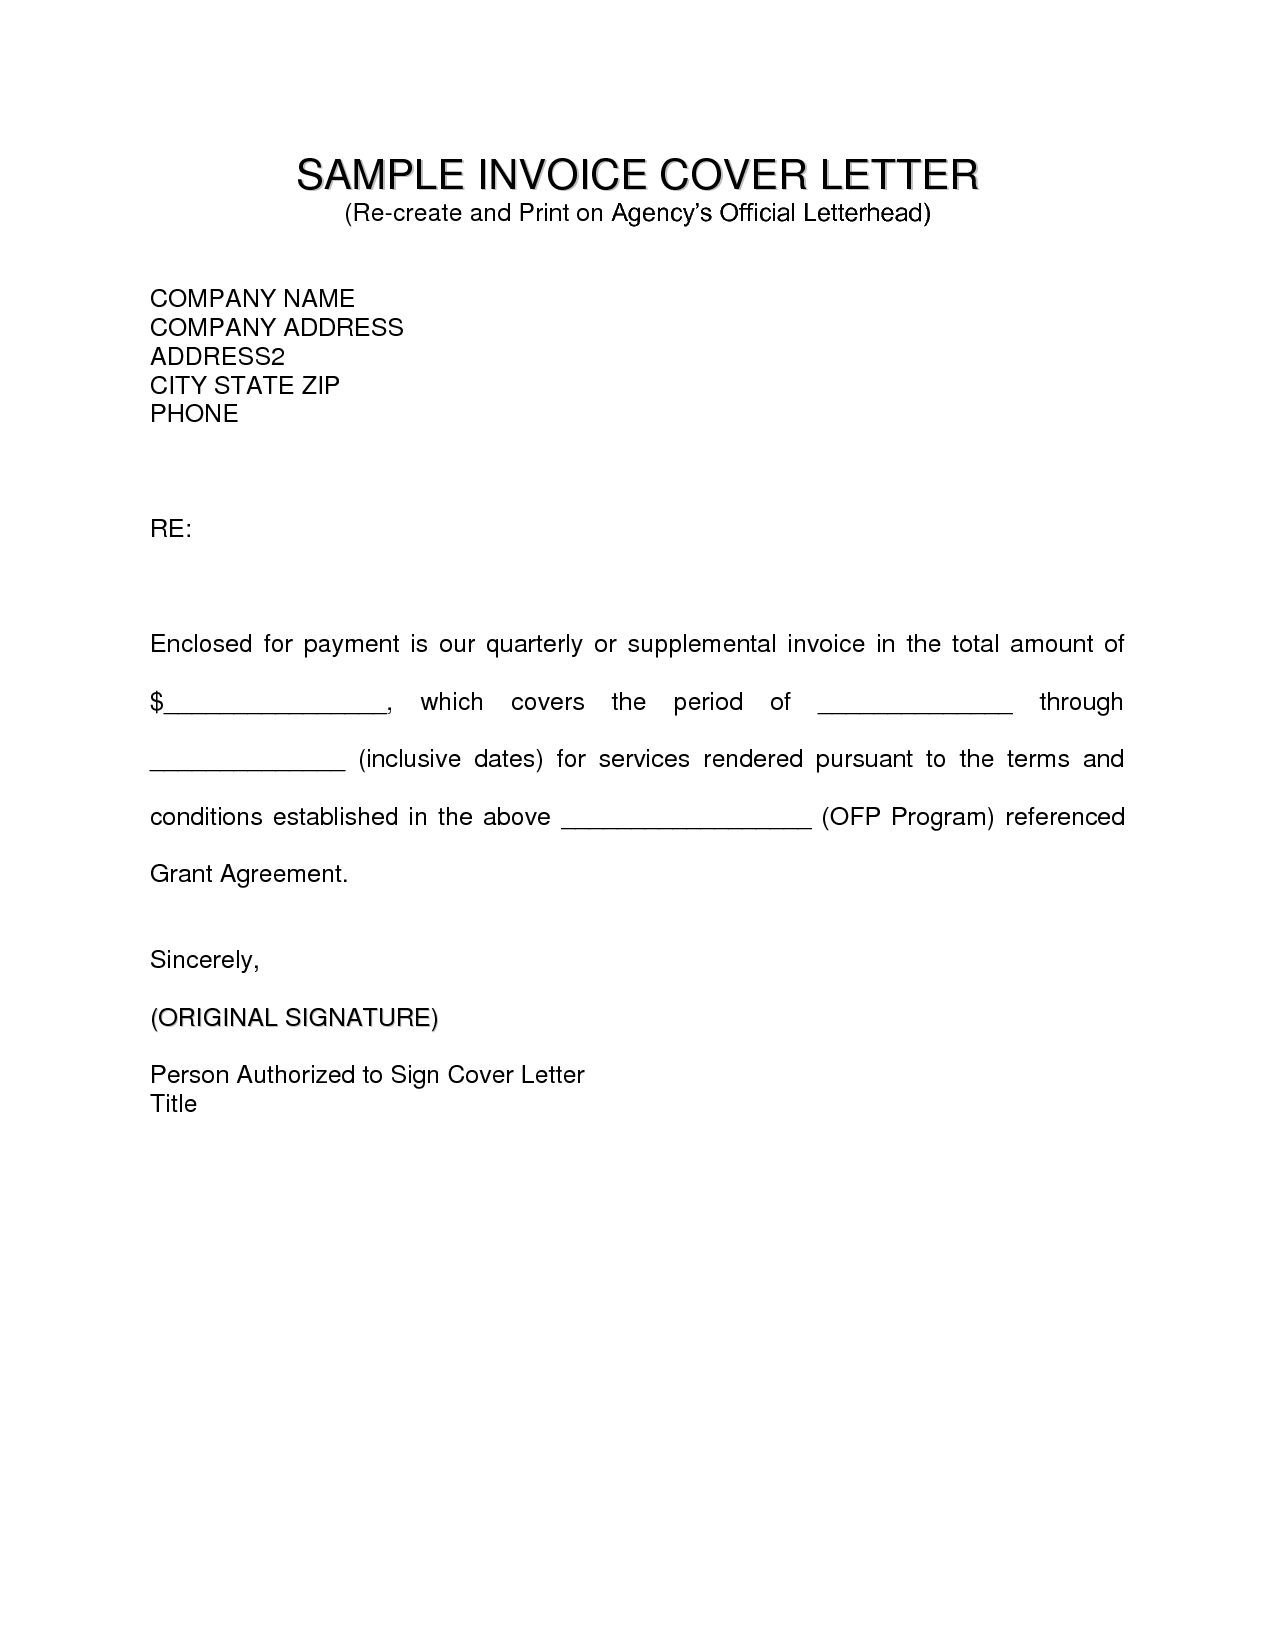 example invoice letters cover letter examples for management invoice letter example